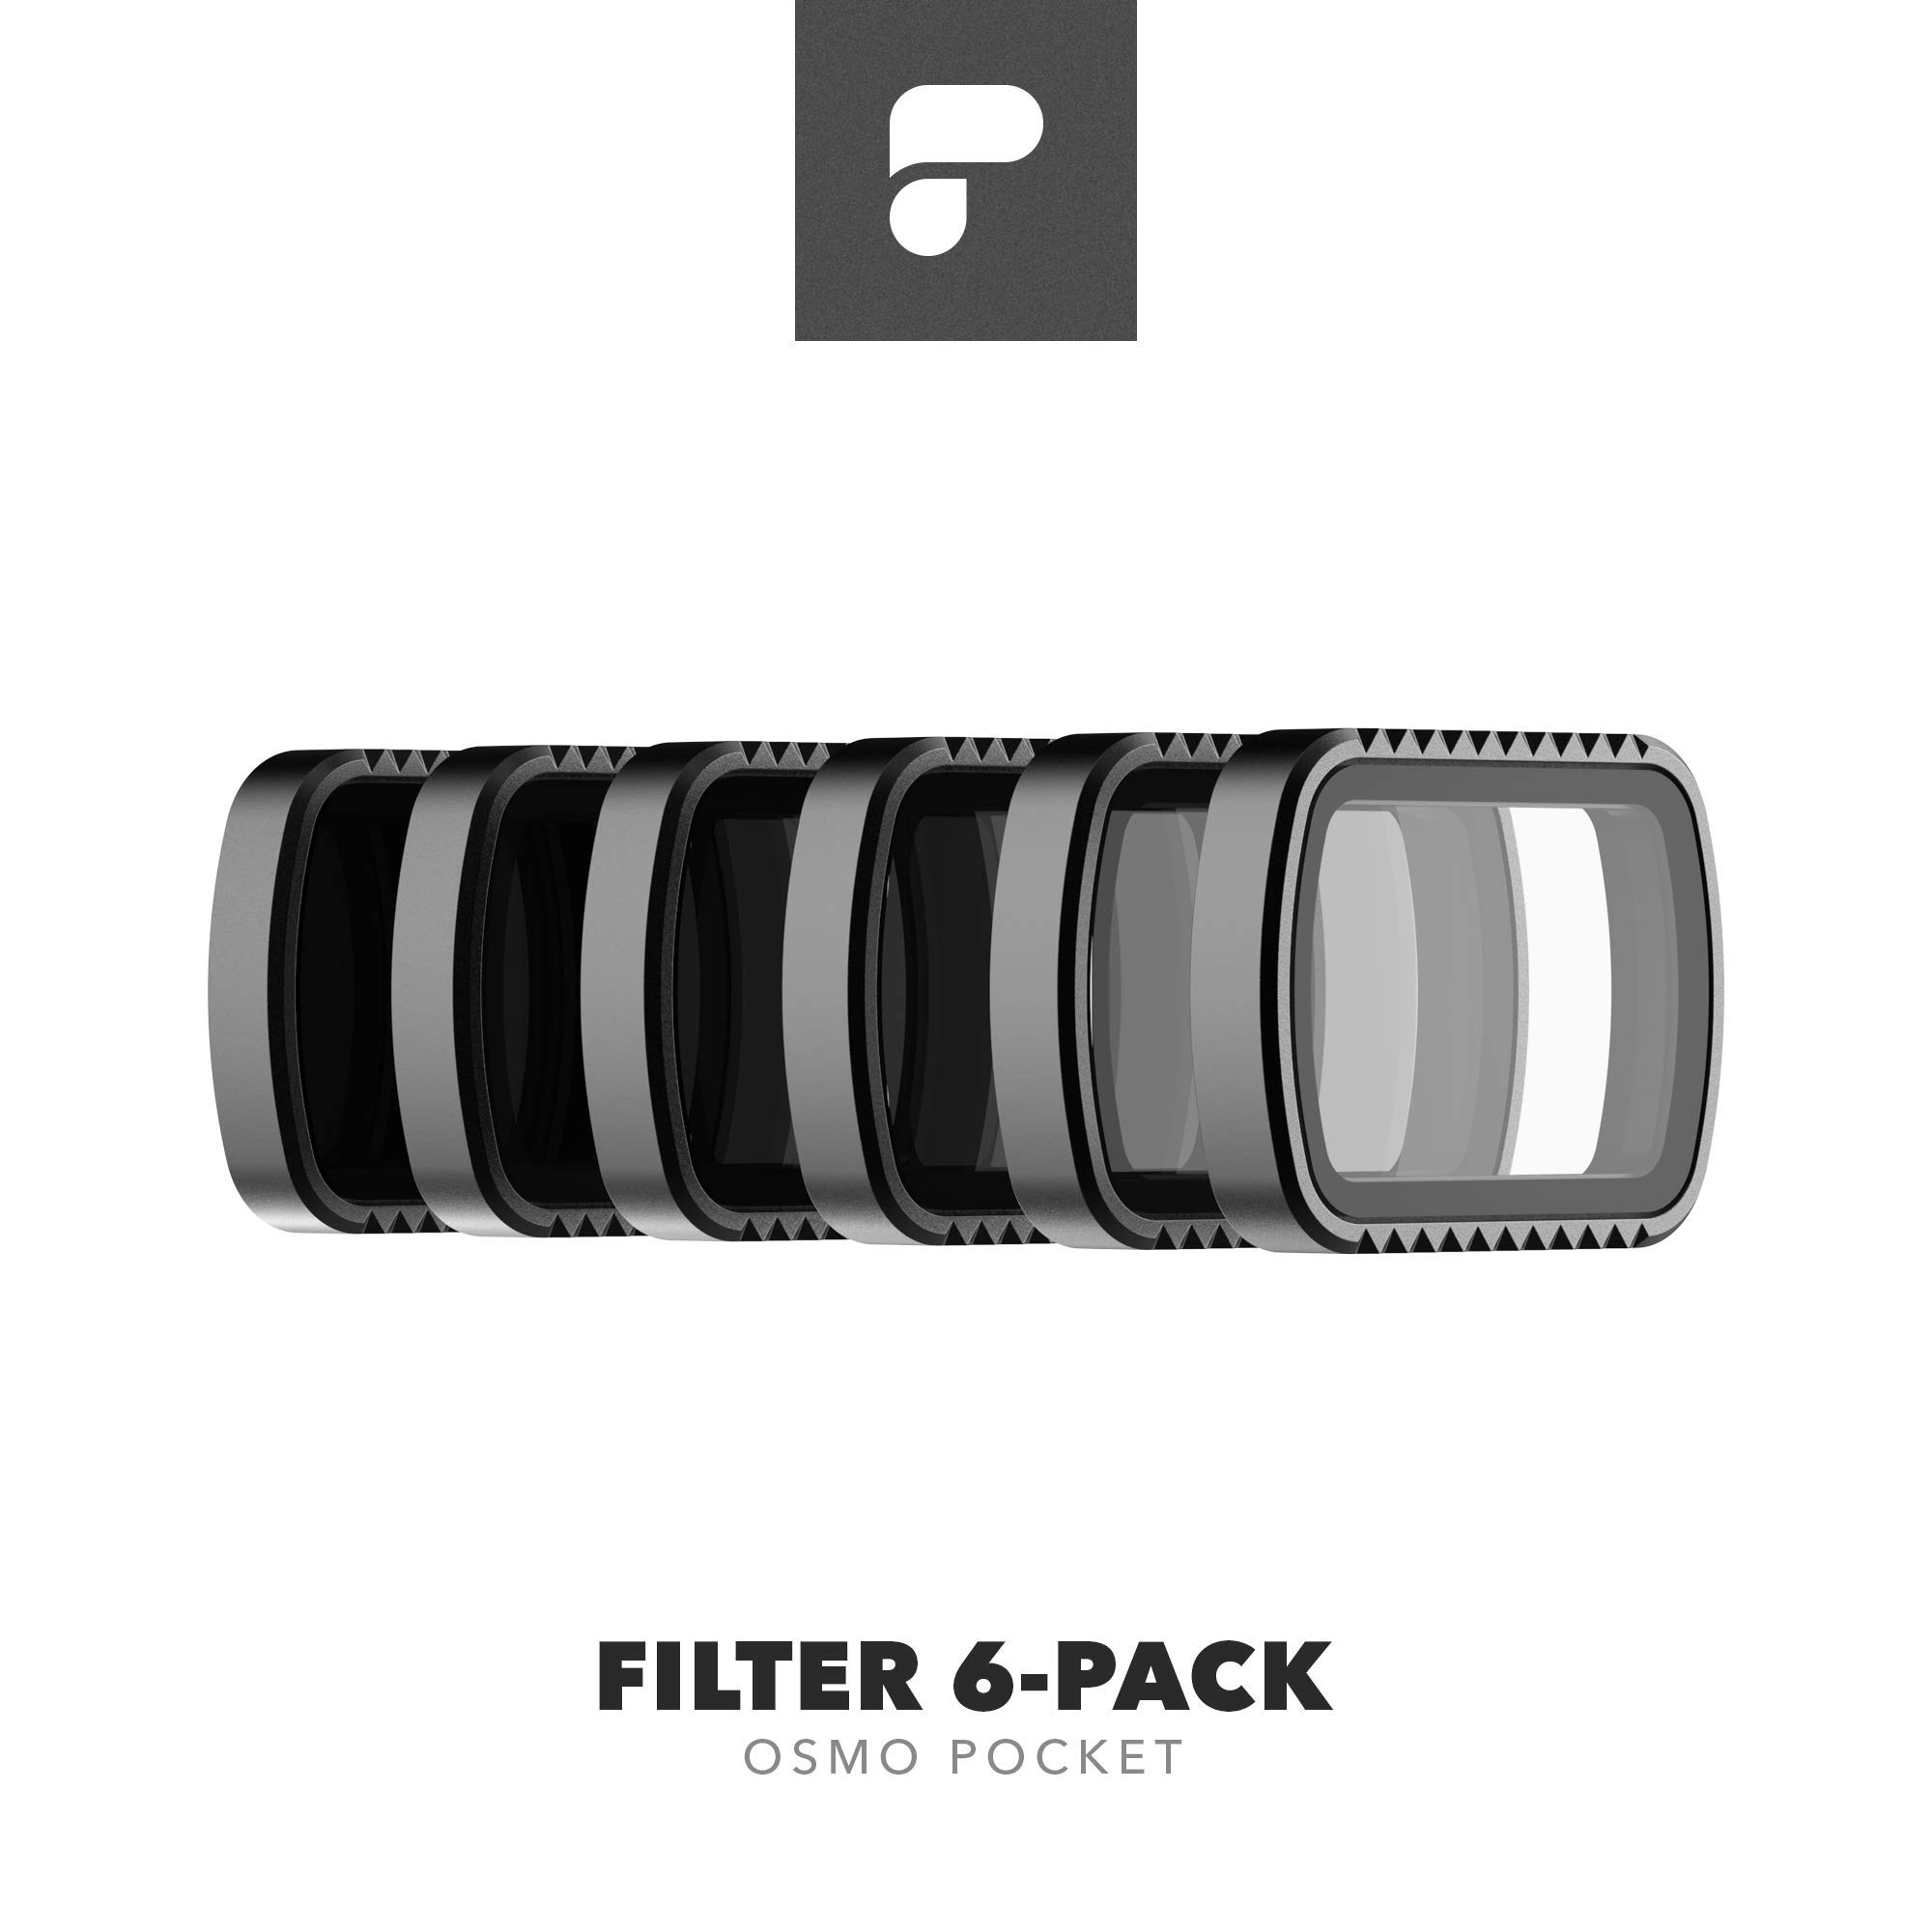 PolarPro Standard Filter 6-Pack for DJI Osmo Pocket by PolarPro (Image #1)